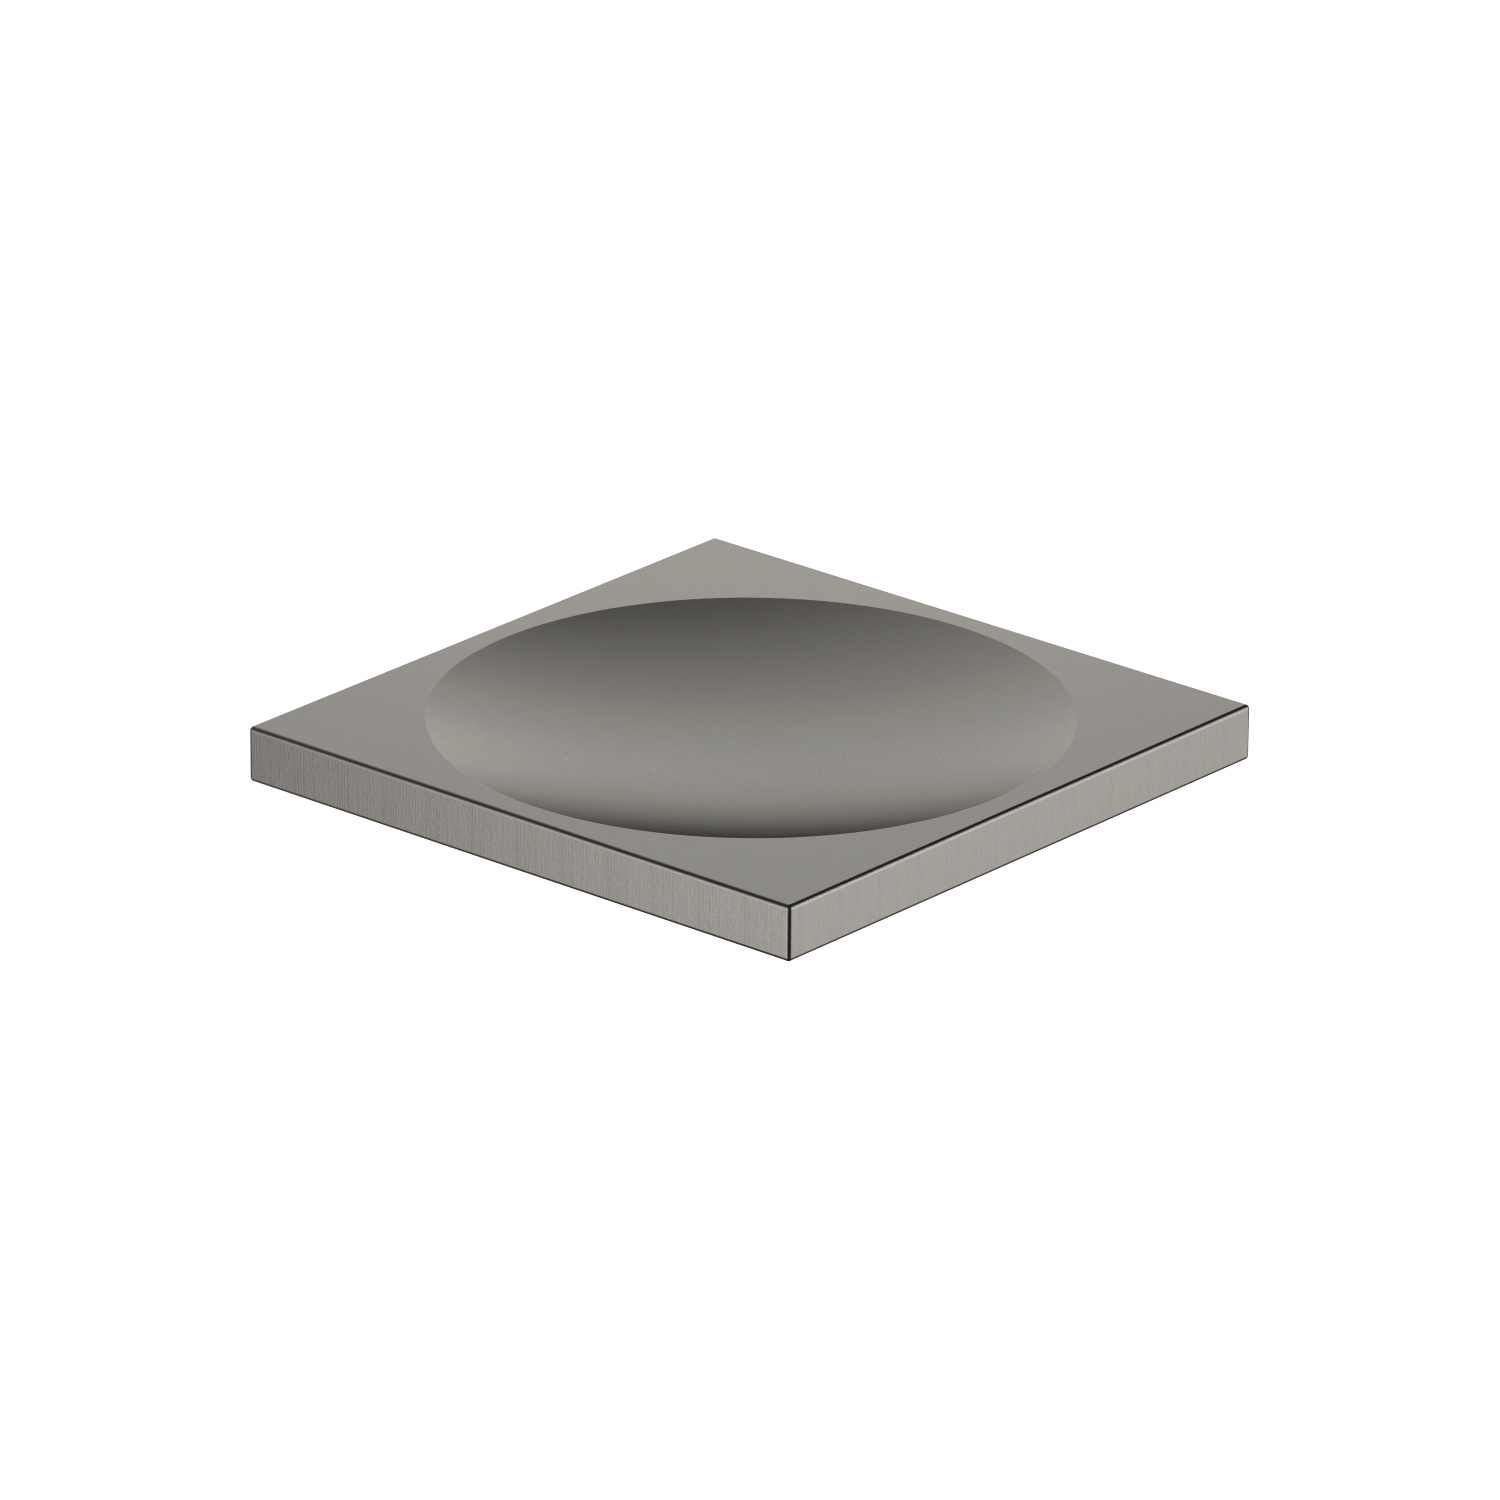 Soap dish free-standing model - Dark Platinum matt